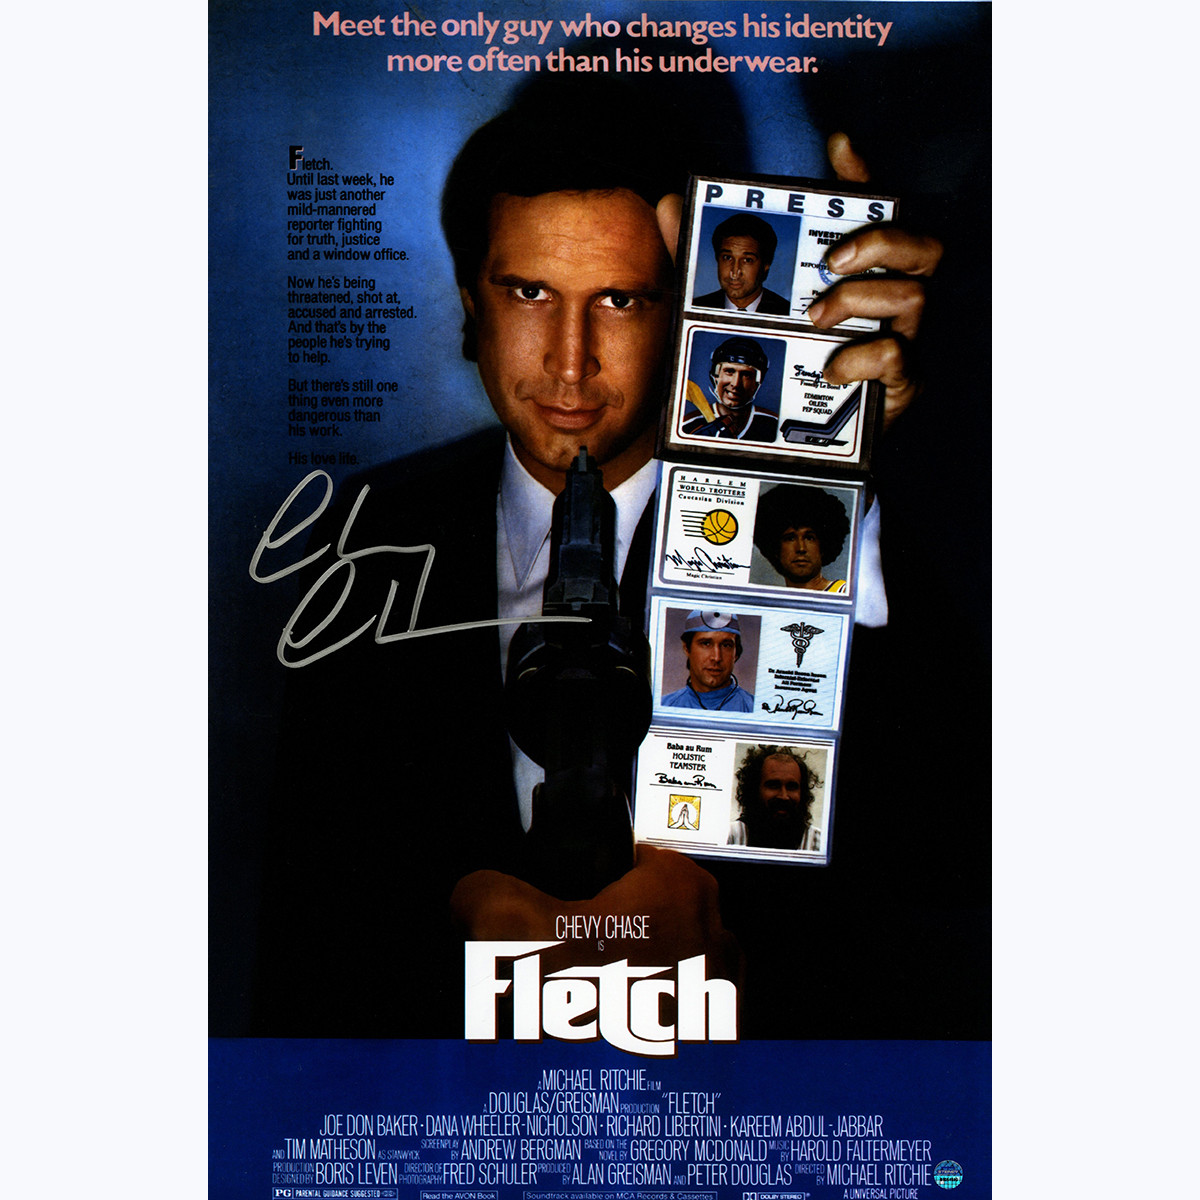 Chevy Chase signed Fletch poster